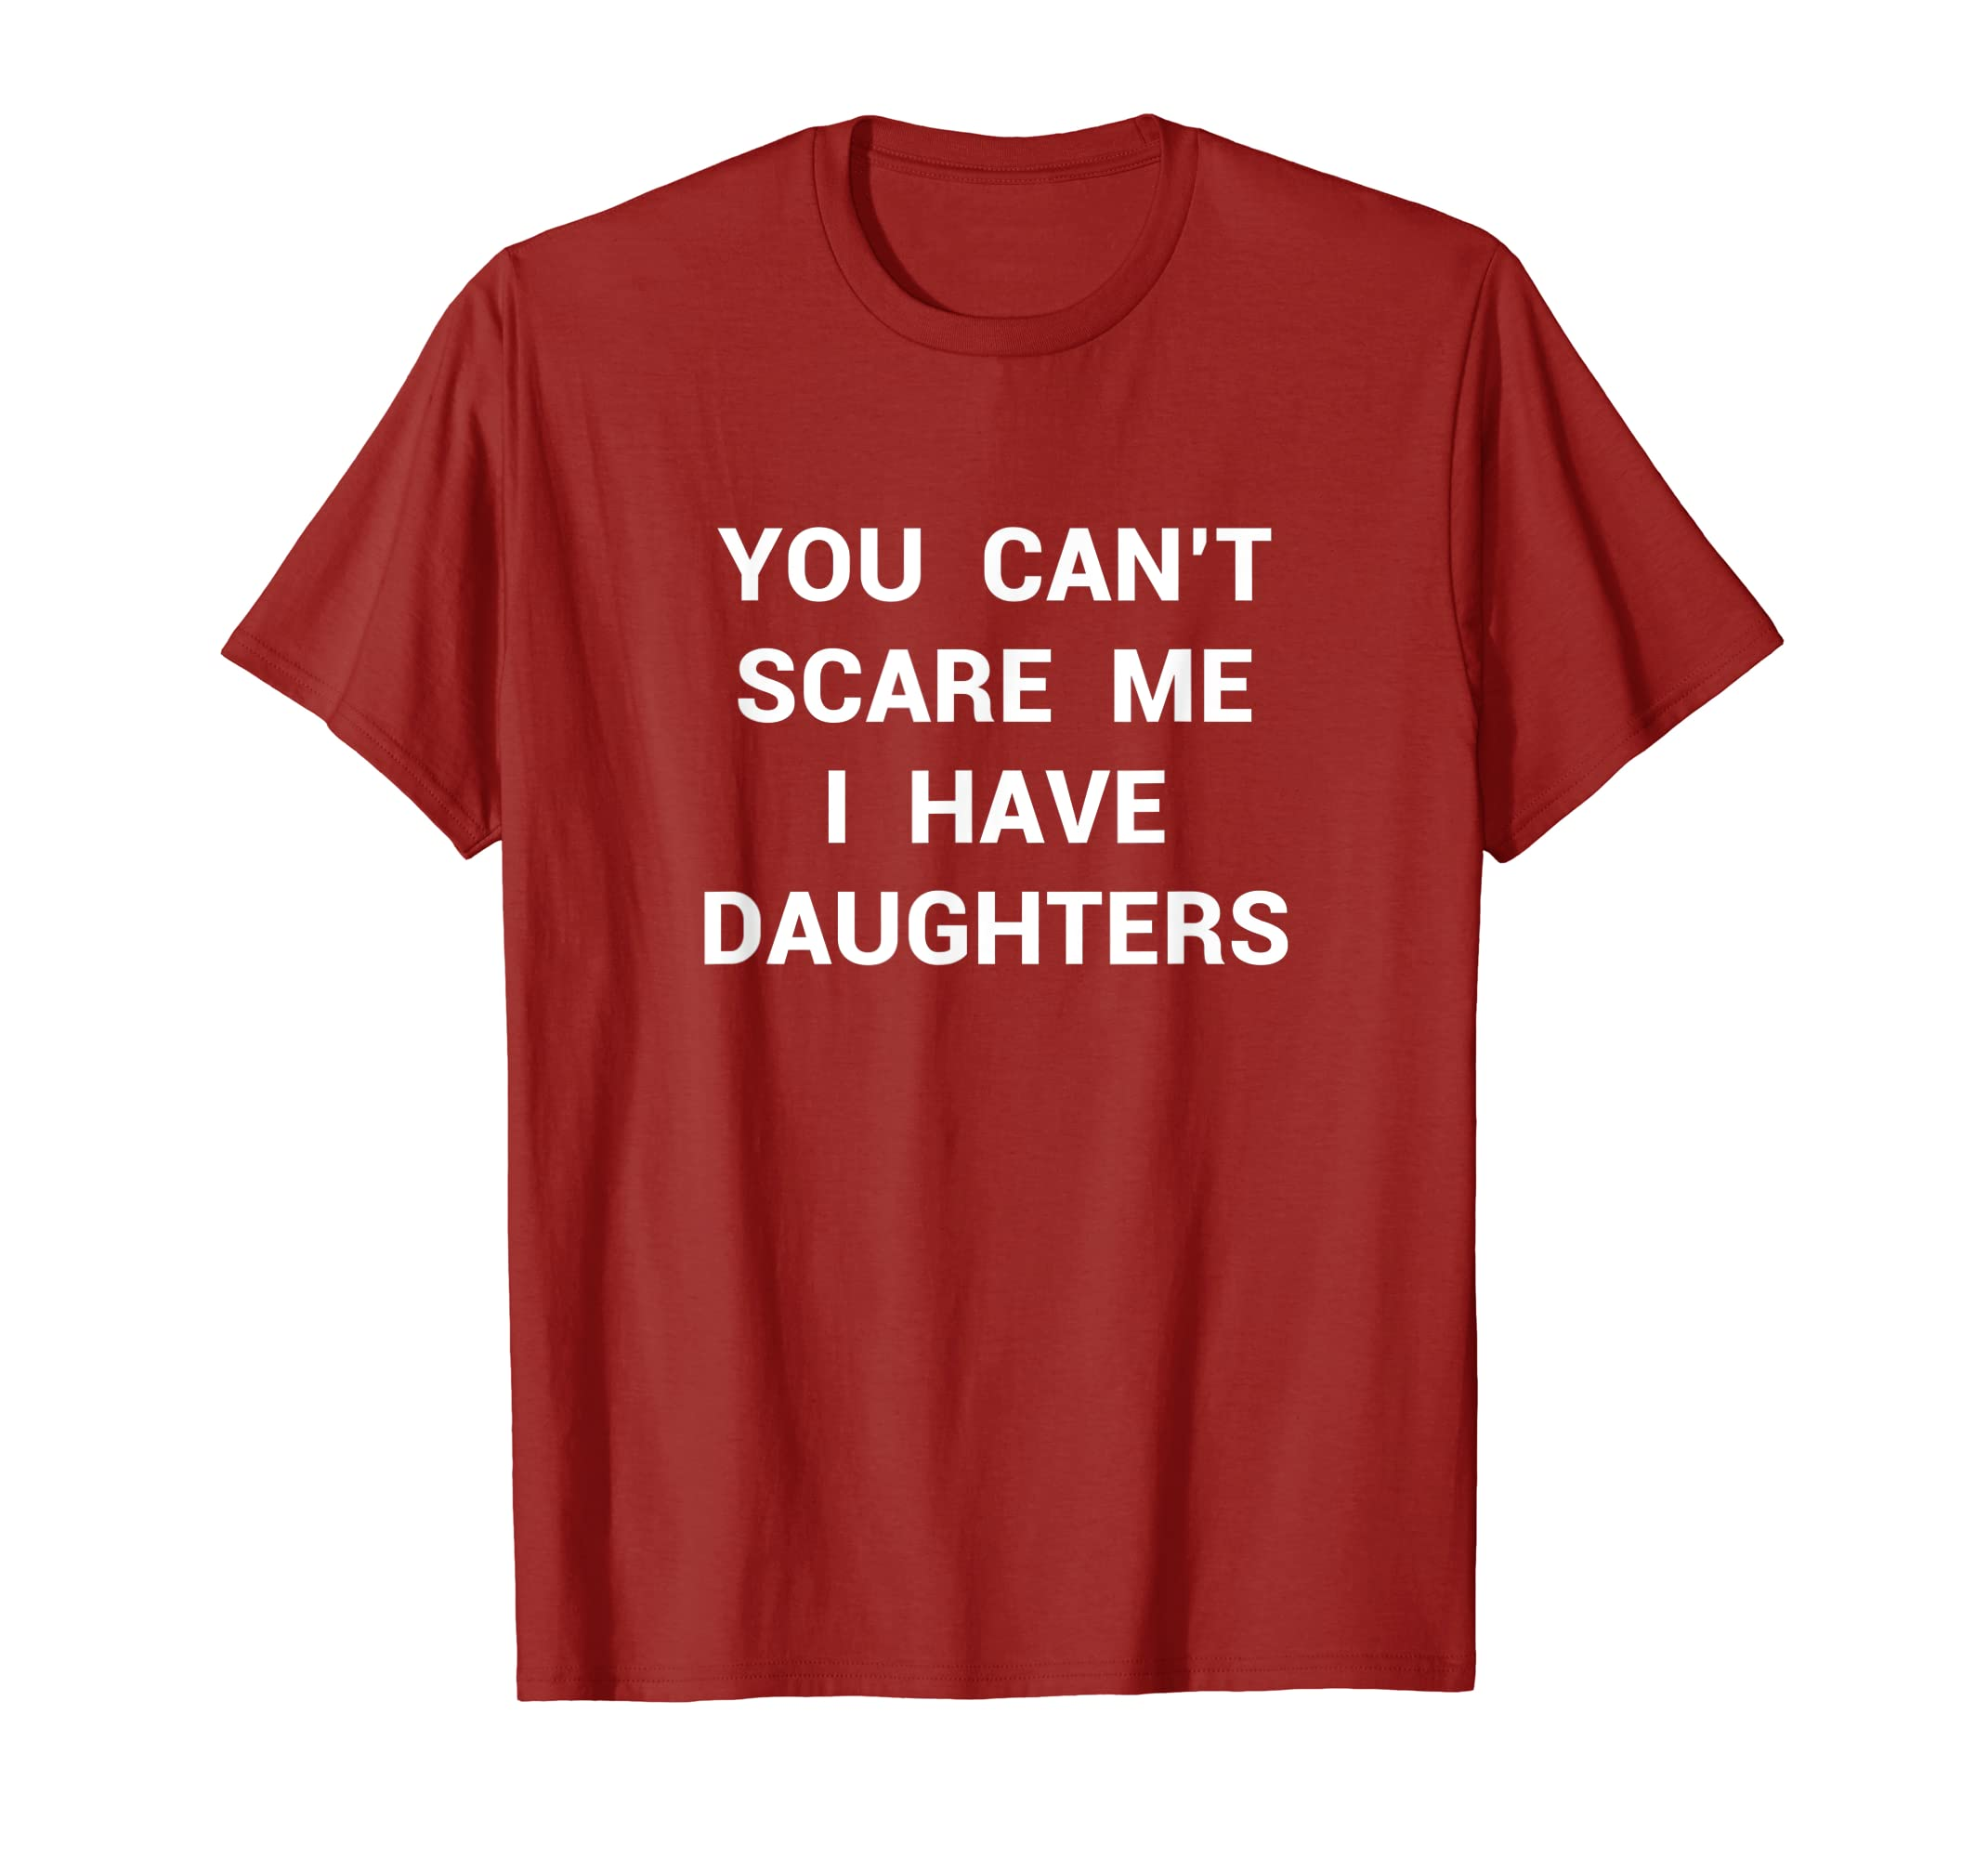 44ebd104 Amazon.com: Funny Daughter Shirt Fathers Day Gift Dads Stepdad Grandpa:  Clothing